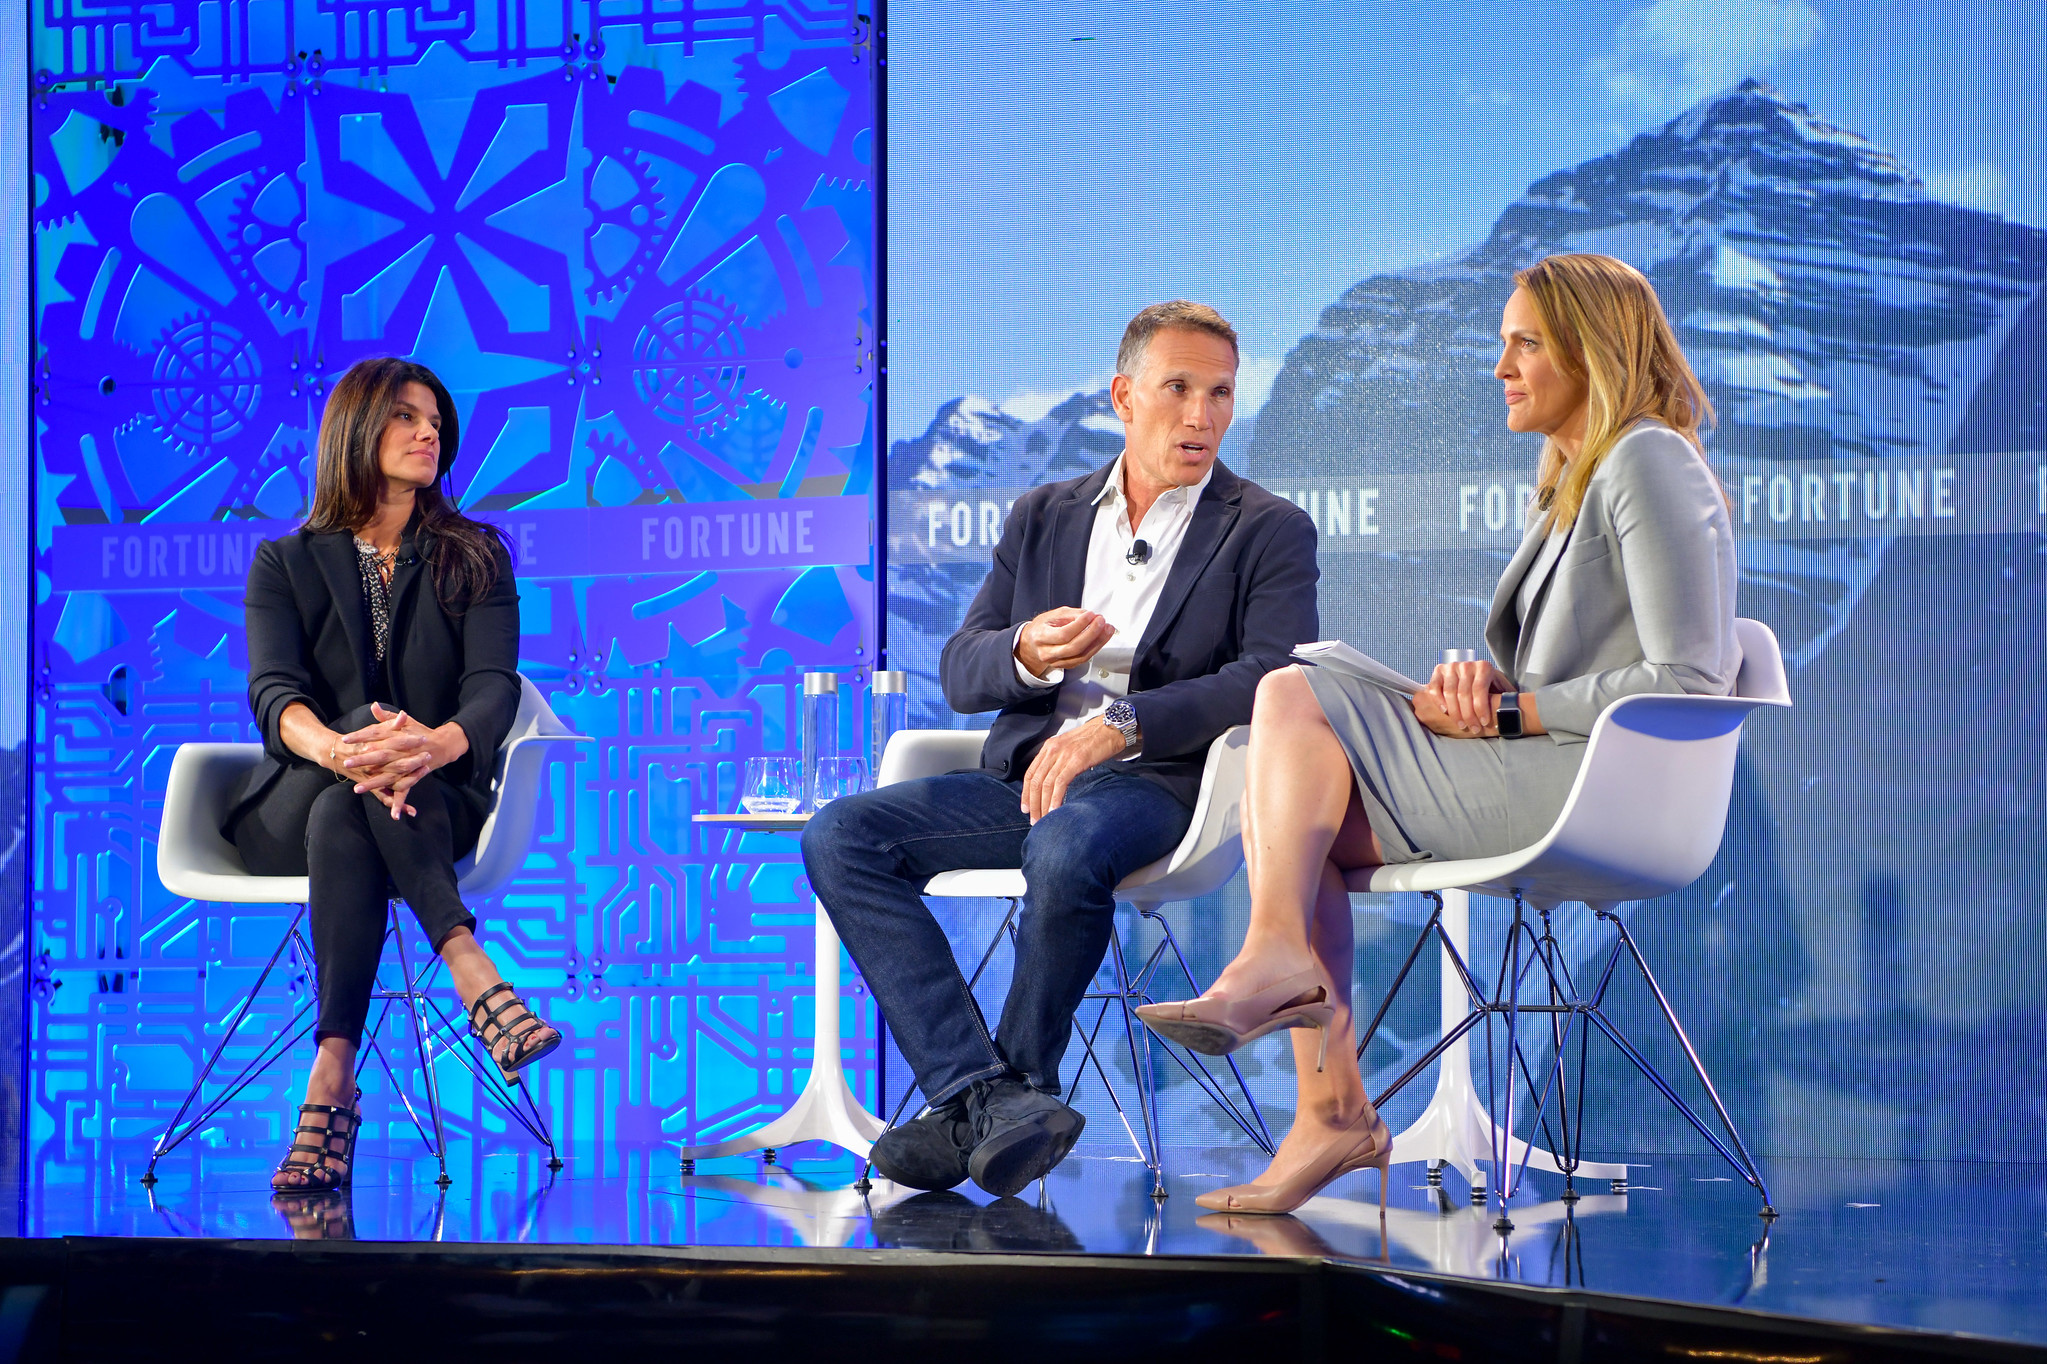 Mattel CEO Ynon Kreiz (center), discusses the company's forthcoming Barbie movie, with Mattel Films executive producer Robbie Brenner (left) and former OpenTable CEO Christa Quarles, at Fortune's Brainstorm Tech conference in Aspen, Colorado on July 15, 2019.